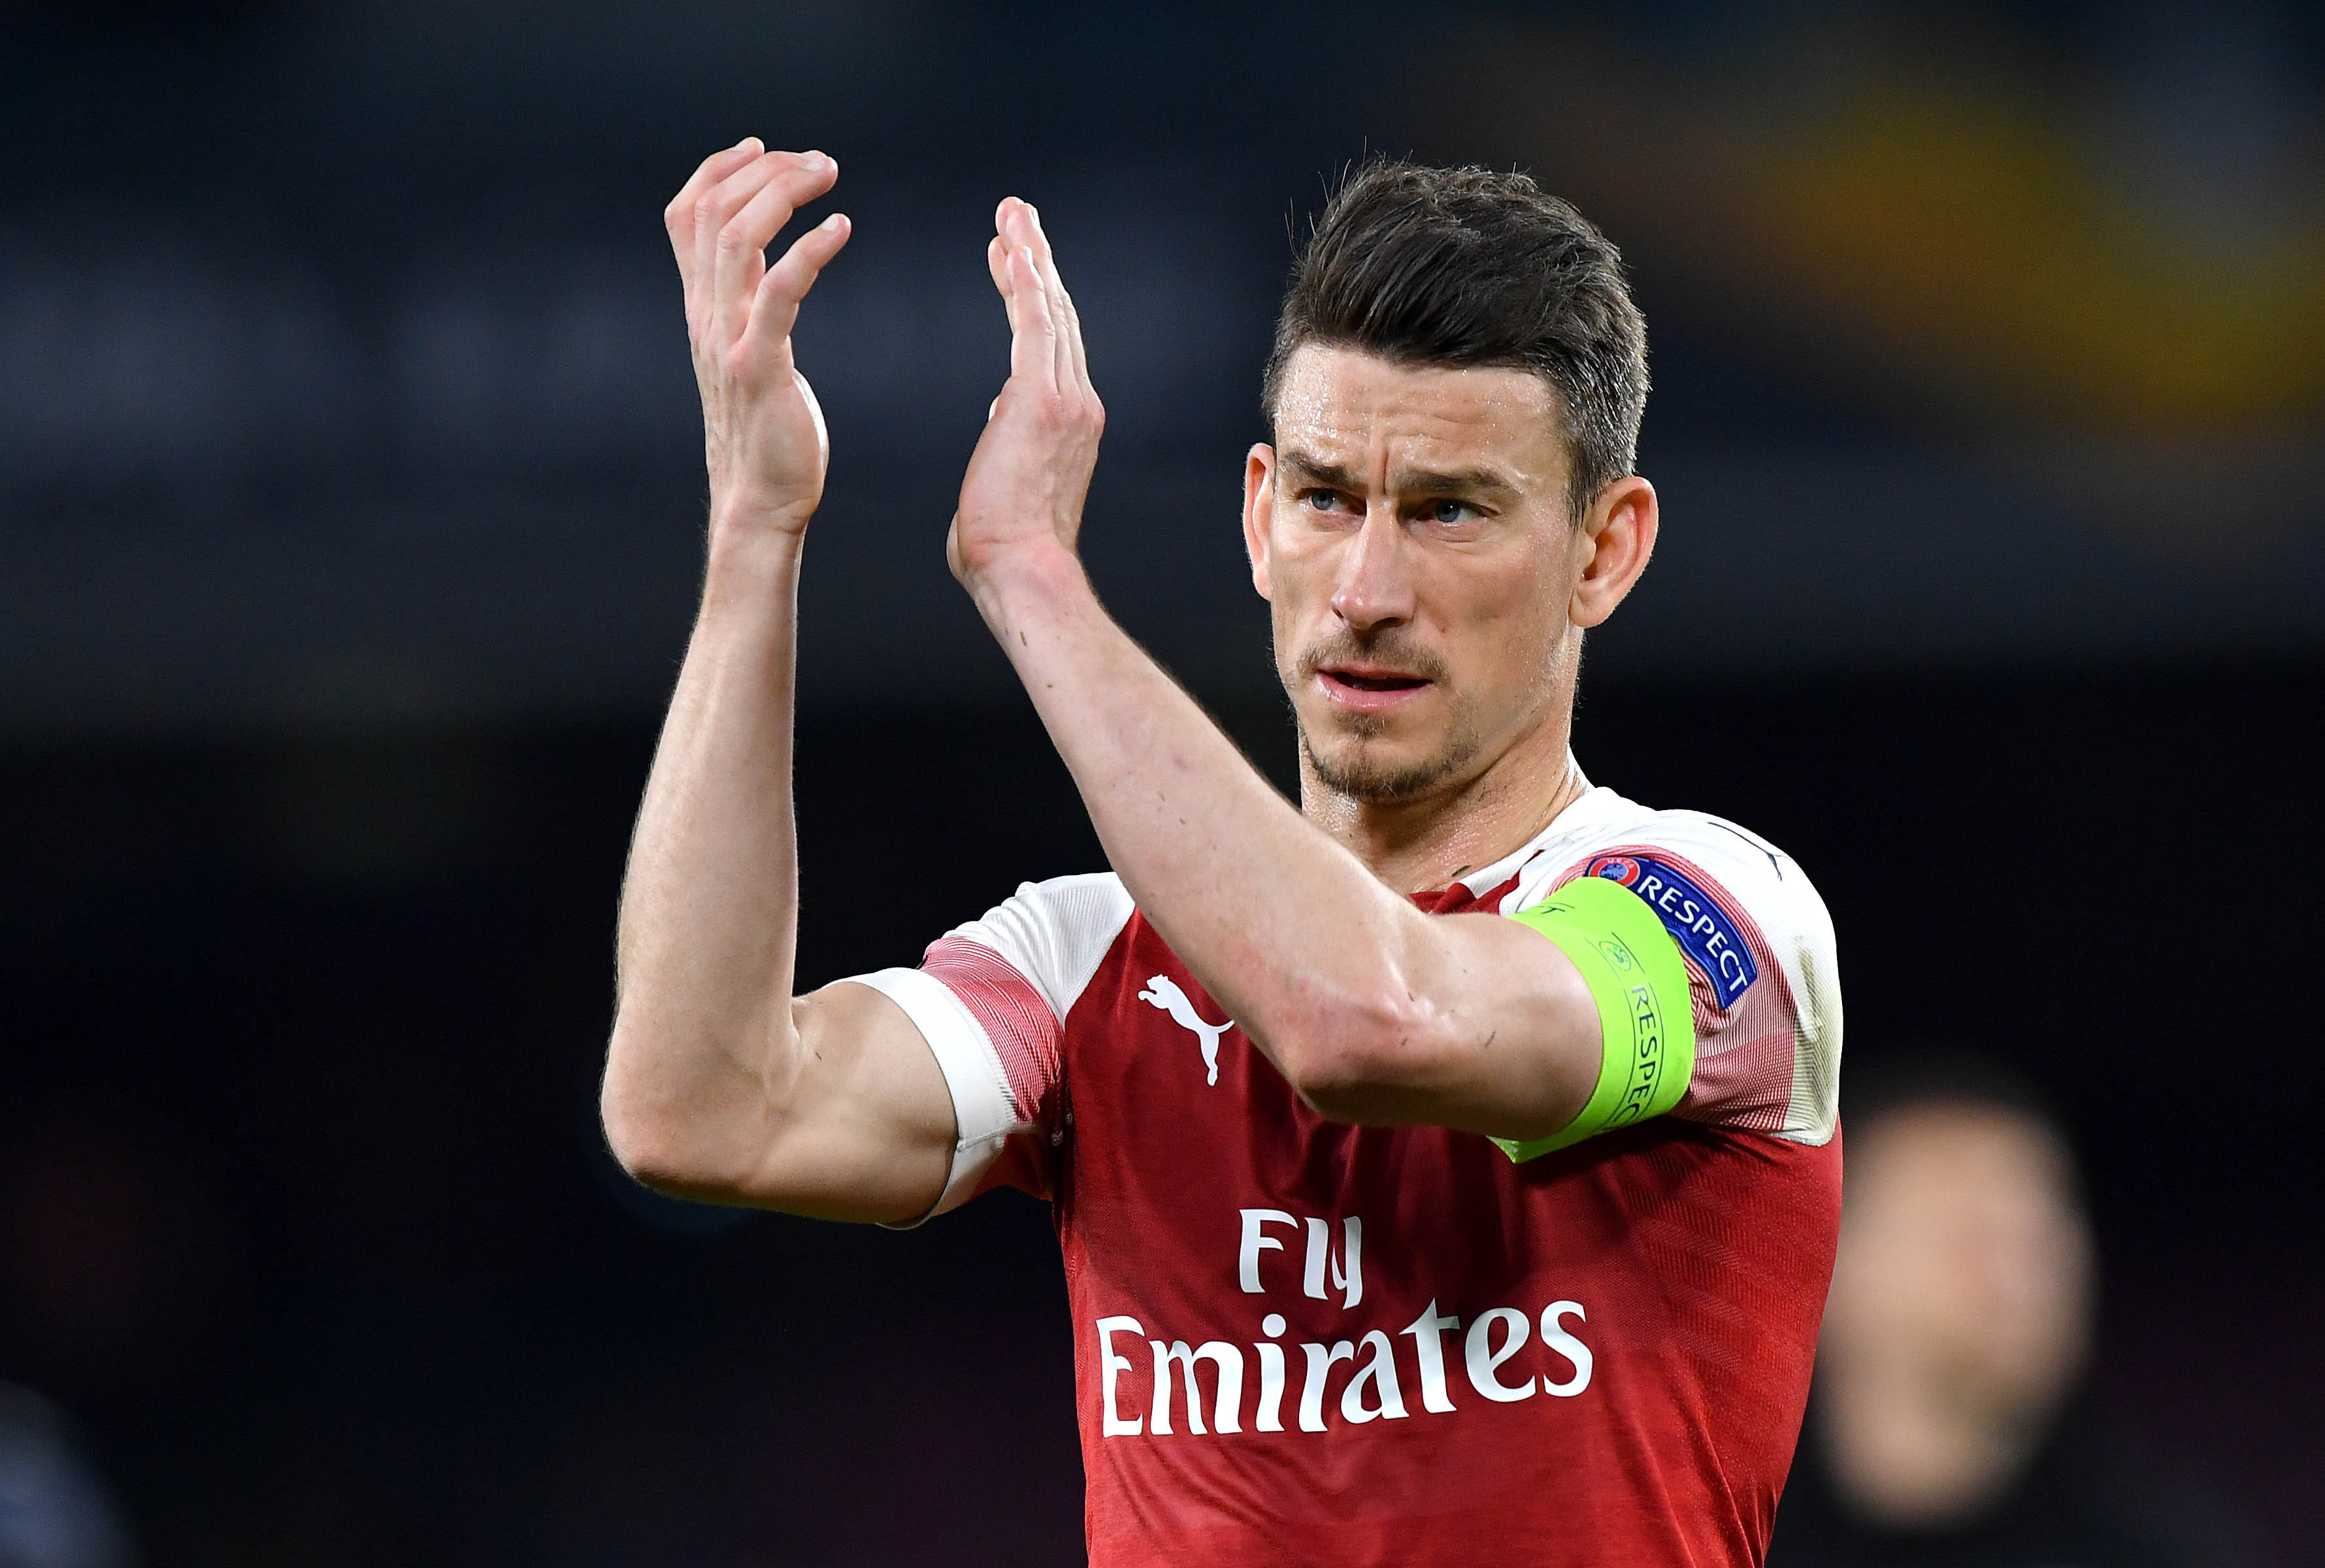 Koscielny is redifining age with his performances. (Photo courtesy: AFP/Getty)